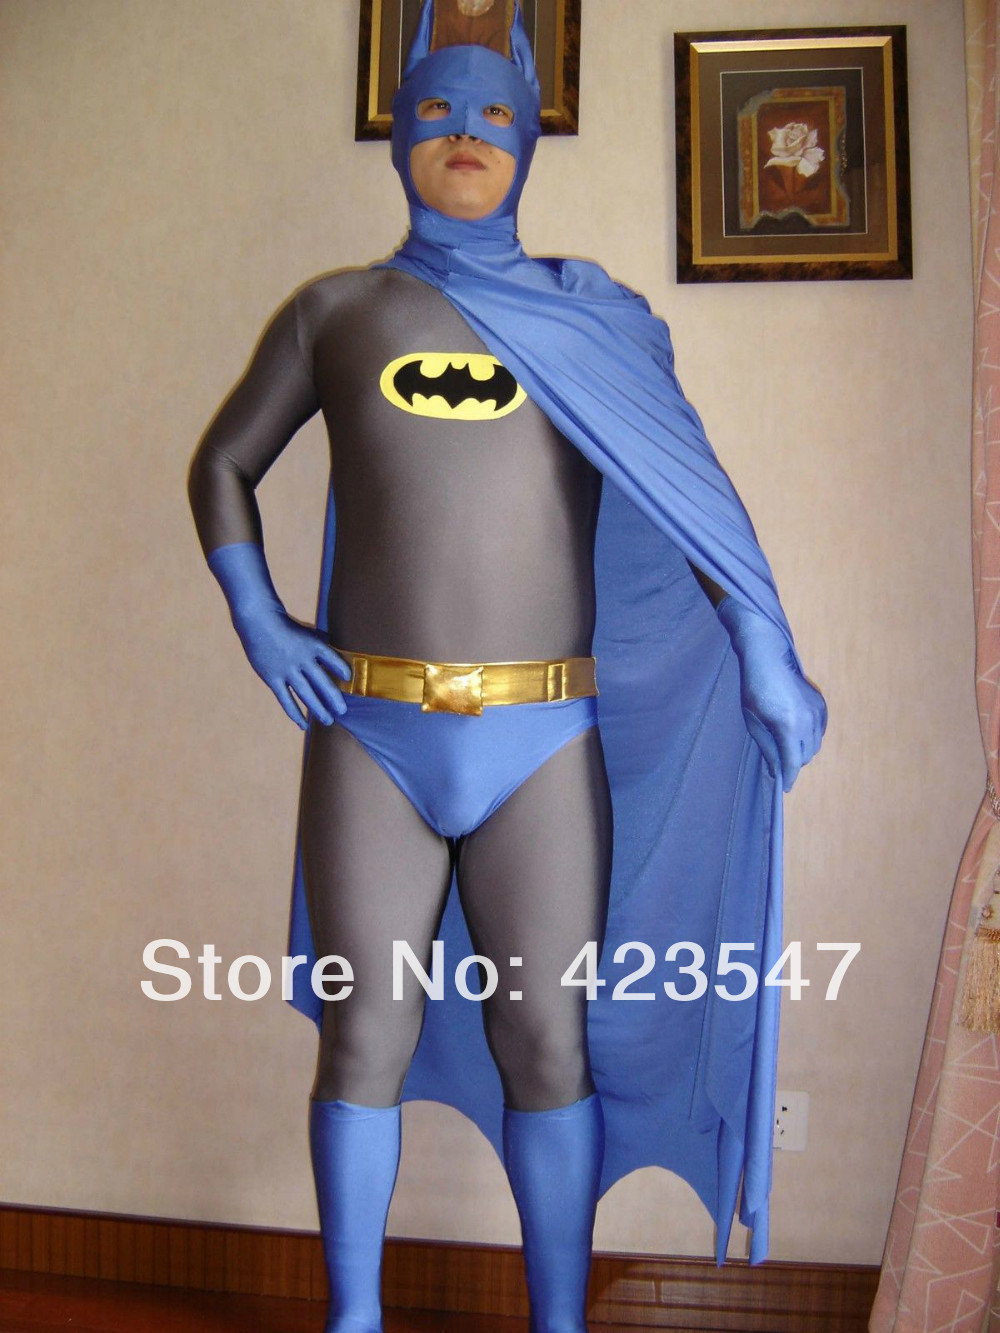 Navy Blue & Grey Batman Superhero Costume Halloween Carnival costumes play